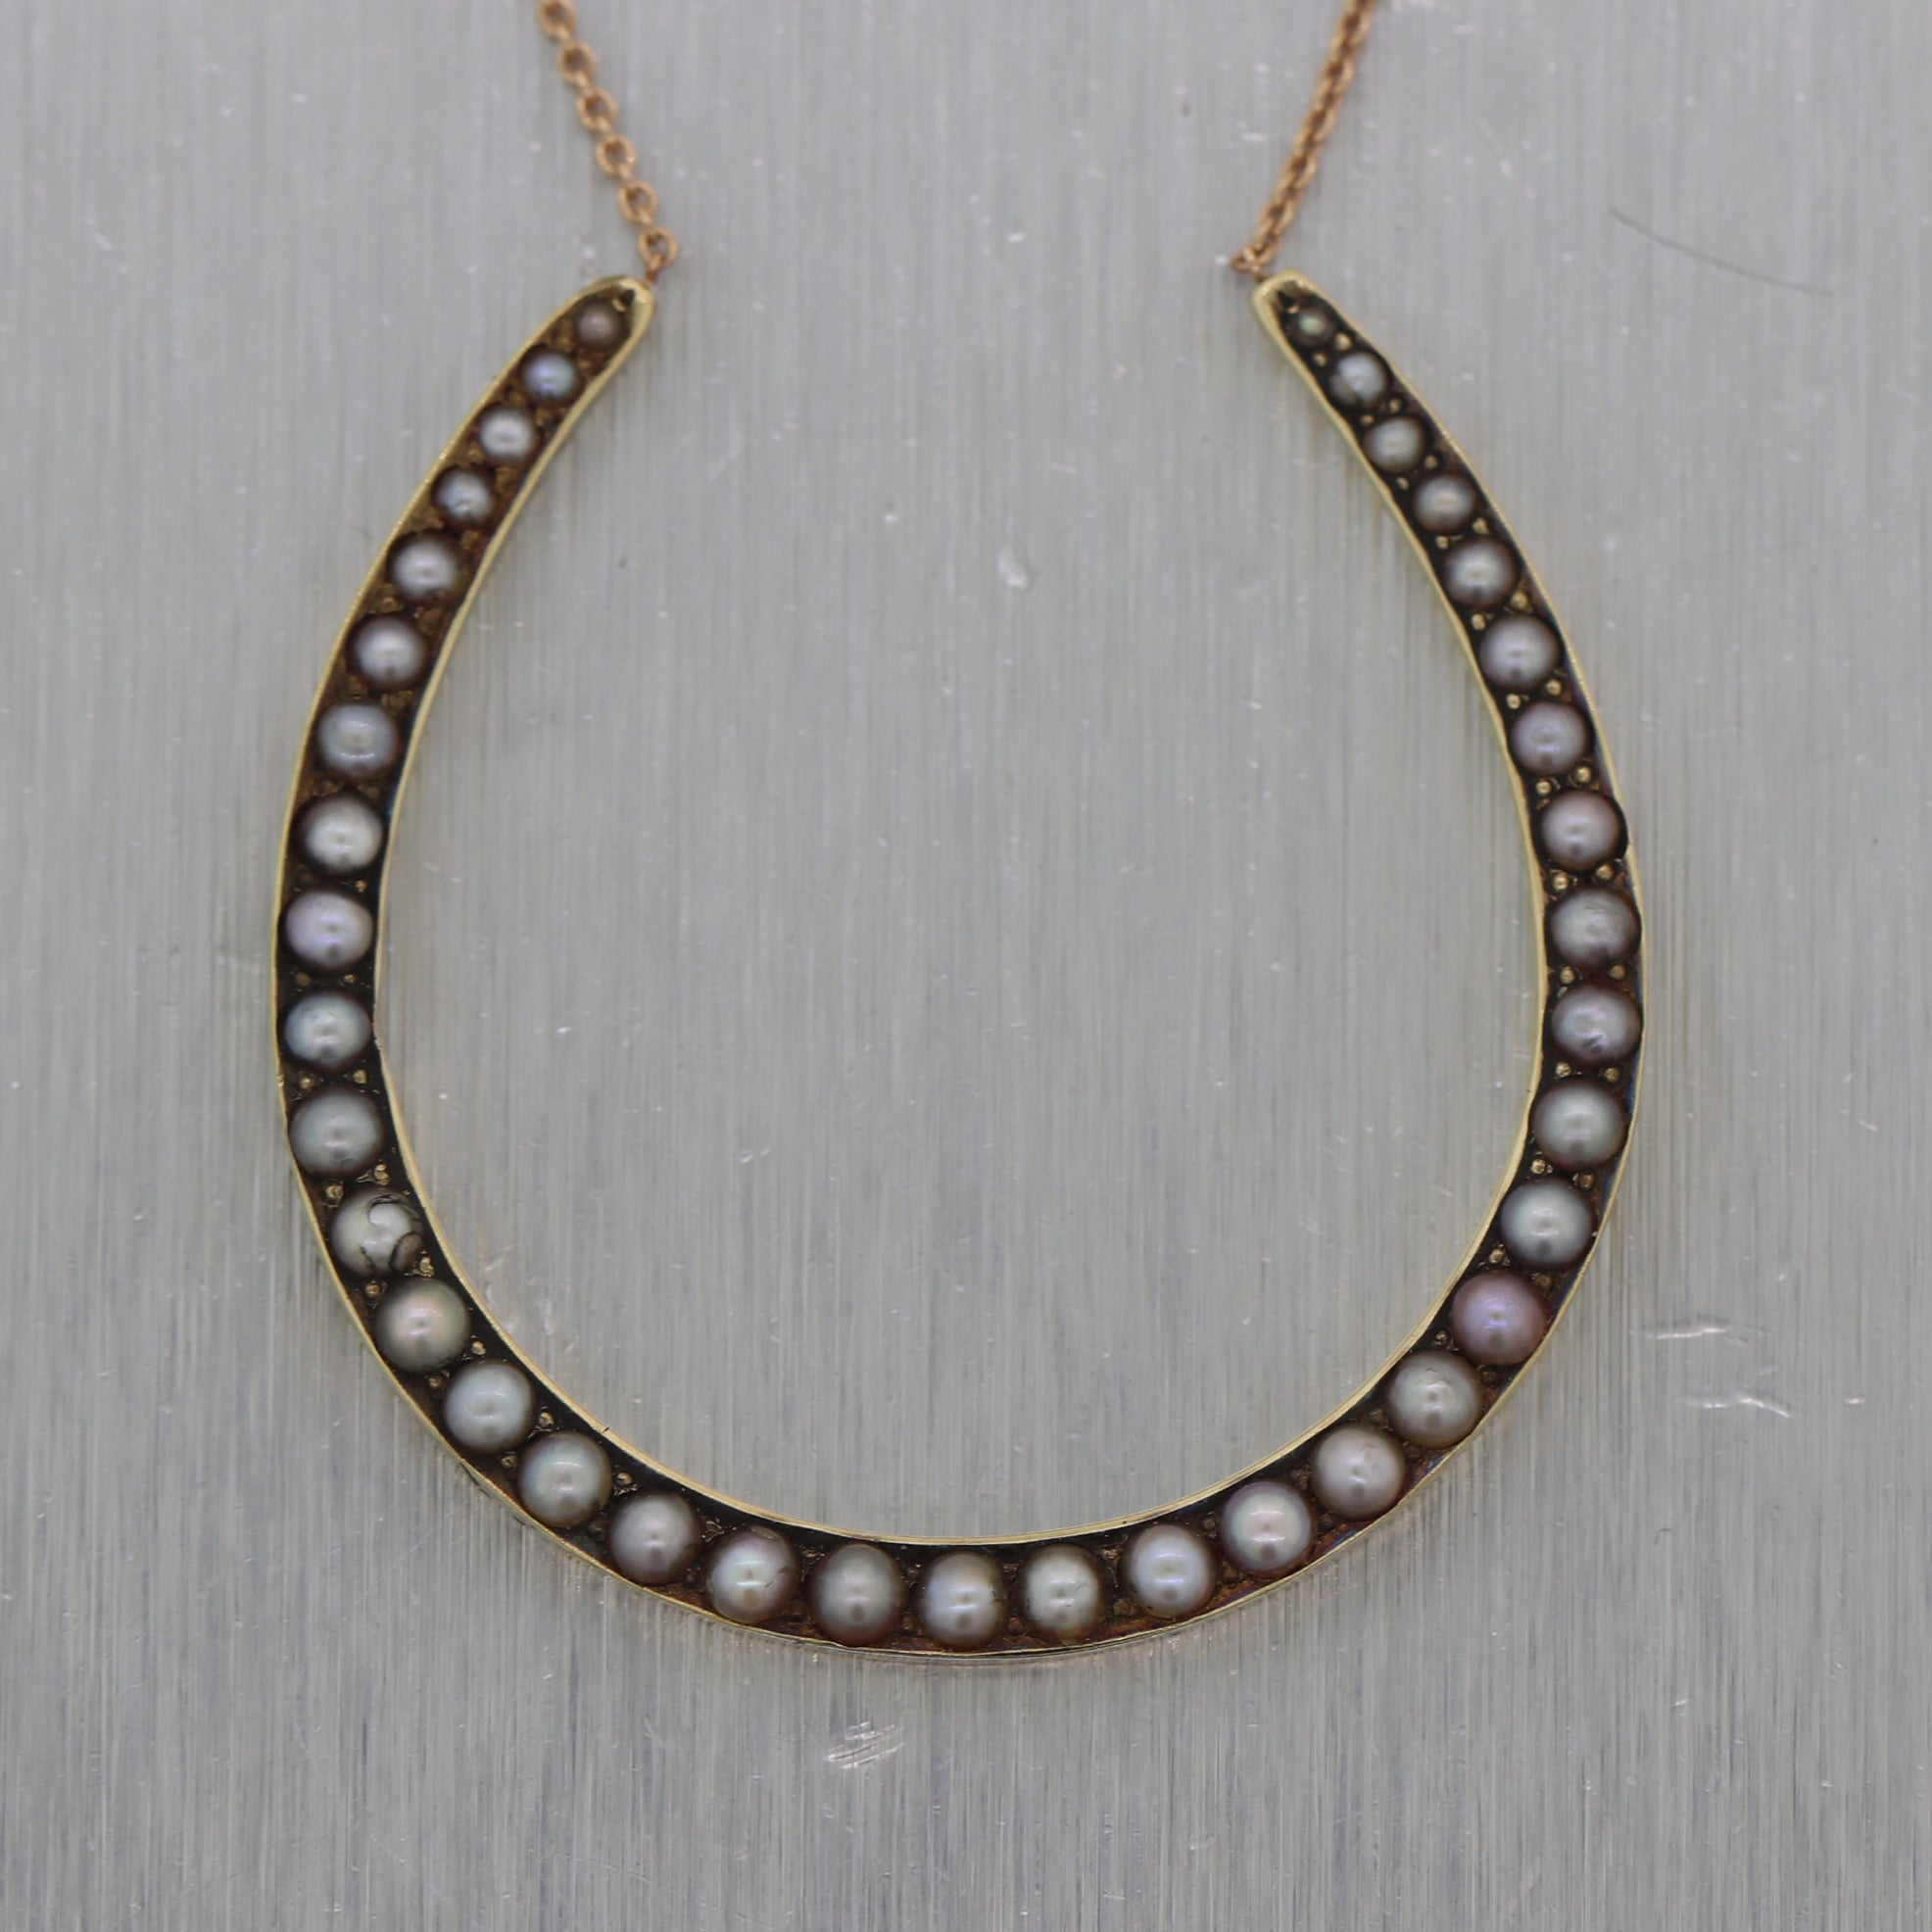 "1890's Antique Victorian 14k Yellow Gold Seed Pearl Horseshoe 17"" Necklace"